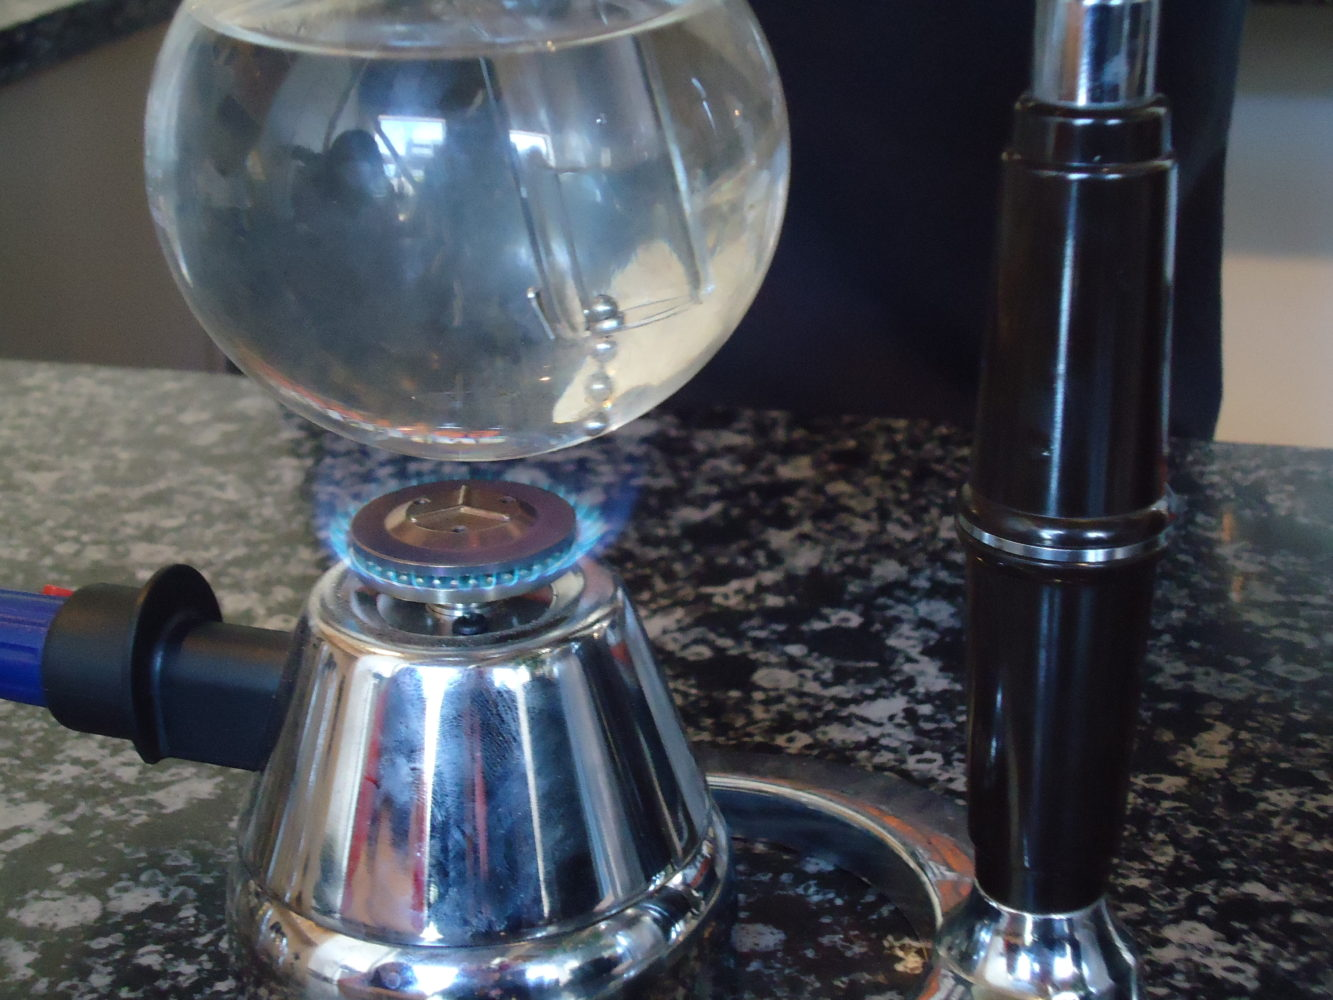 Coffee siphon with gas flame lit on cafe counter